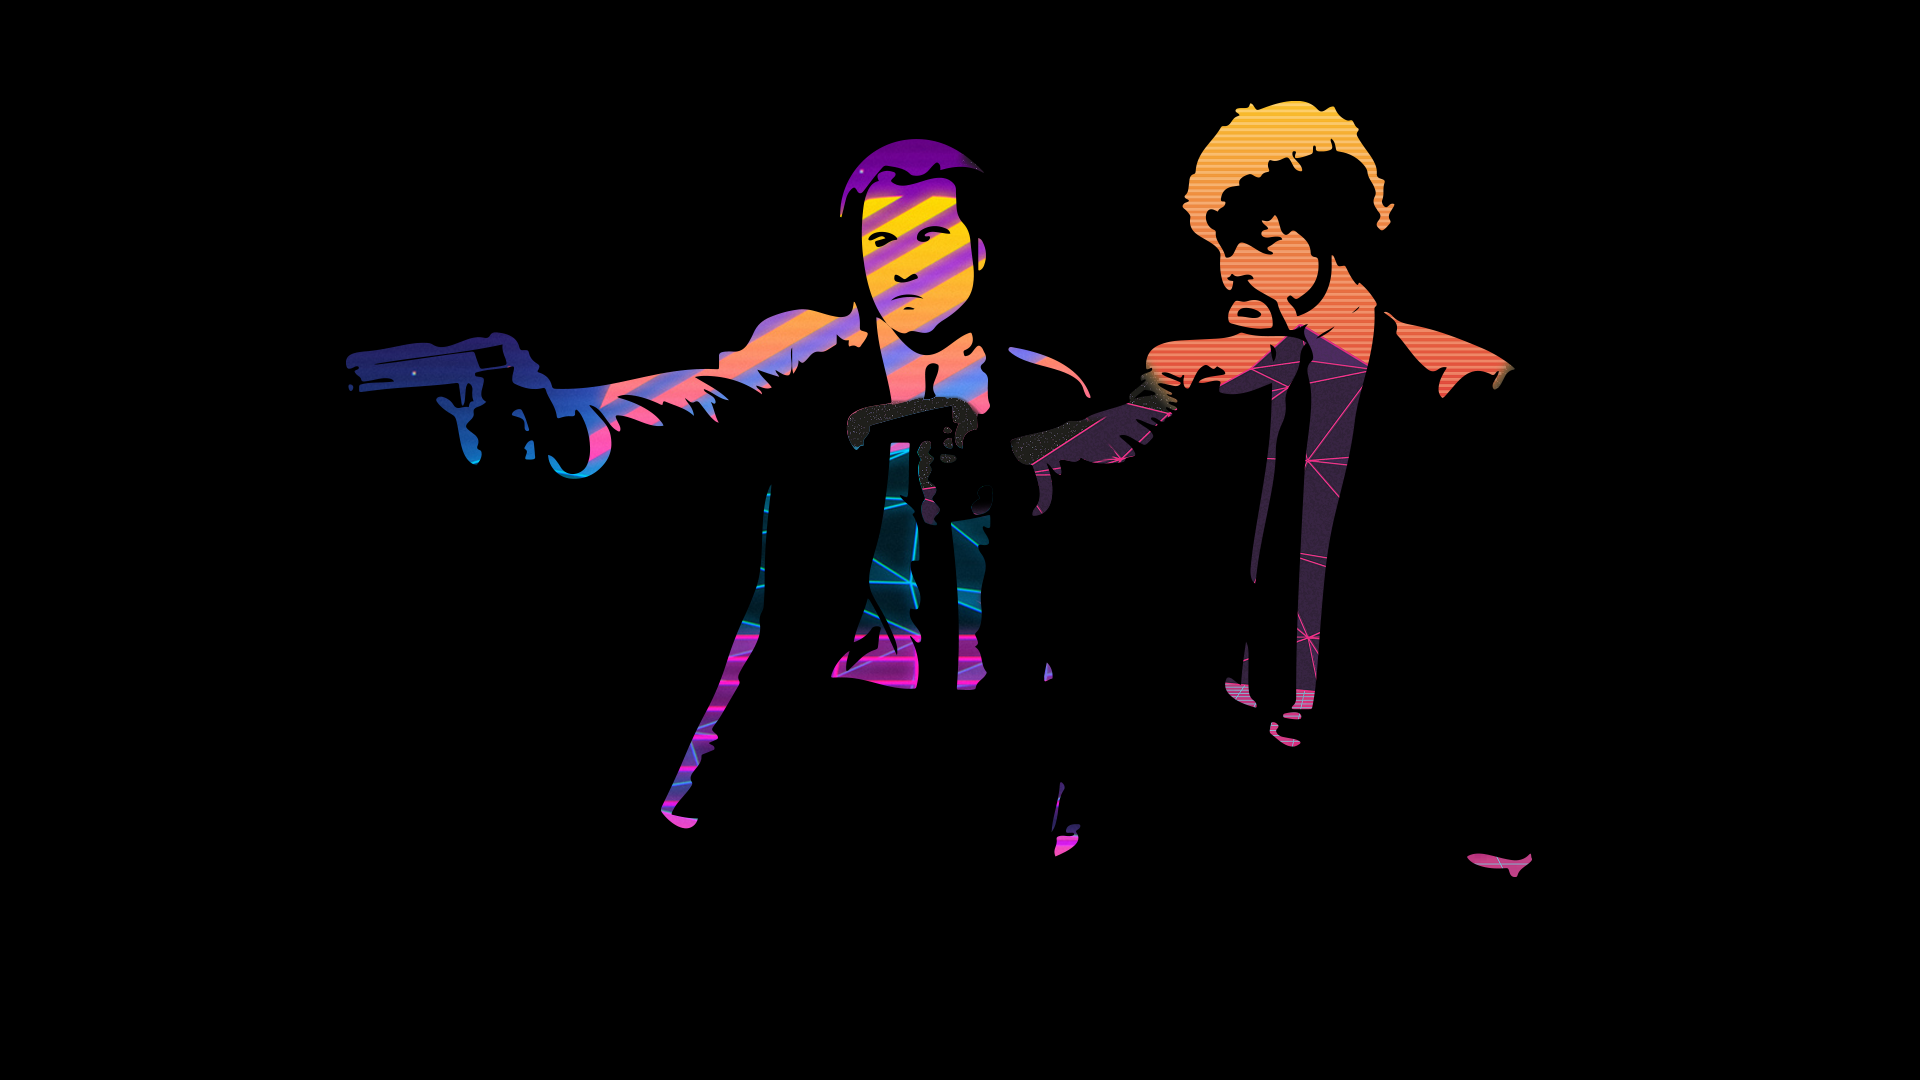 Pulp Fiction Neon Wave [1920 x 1080] in 2020 Pulp